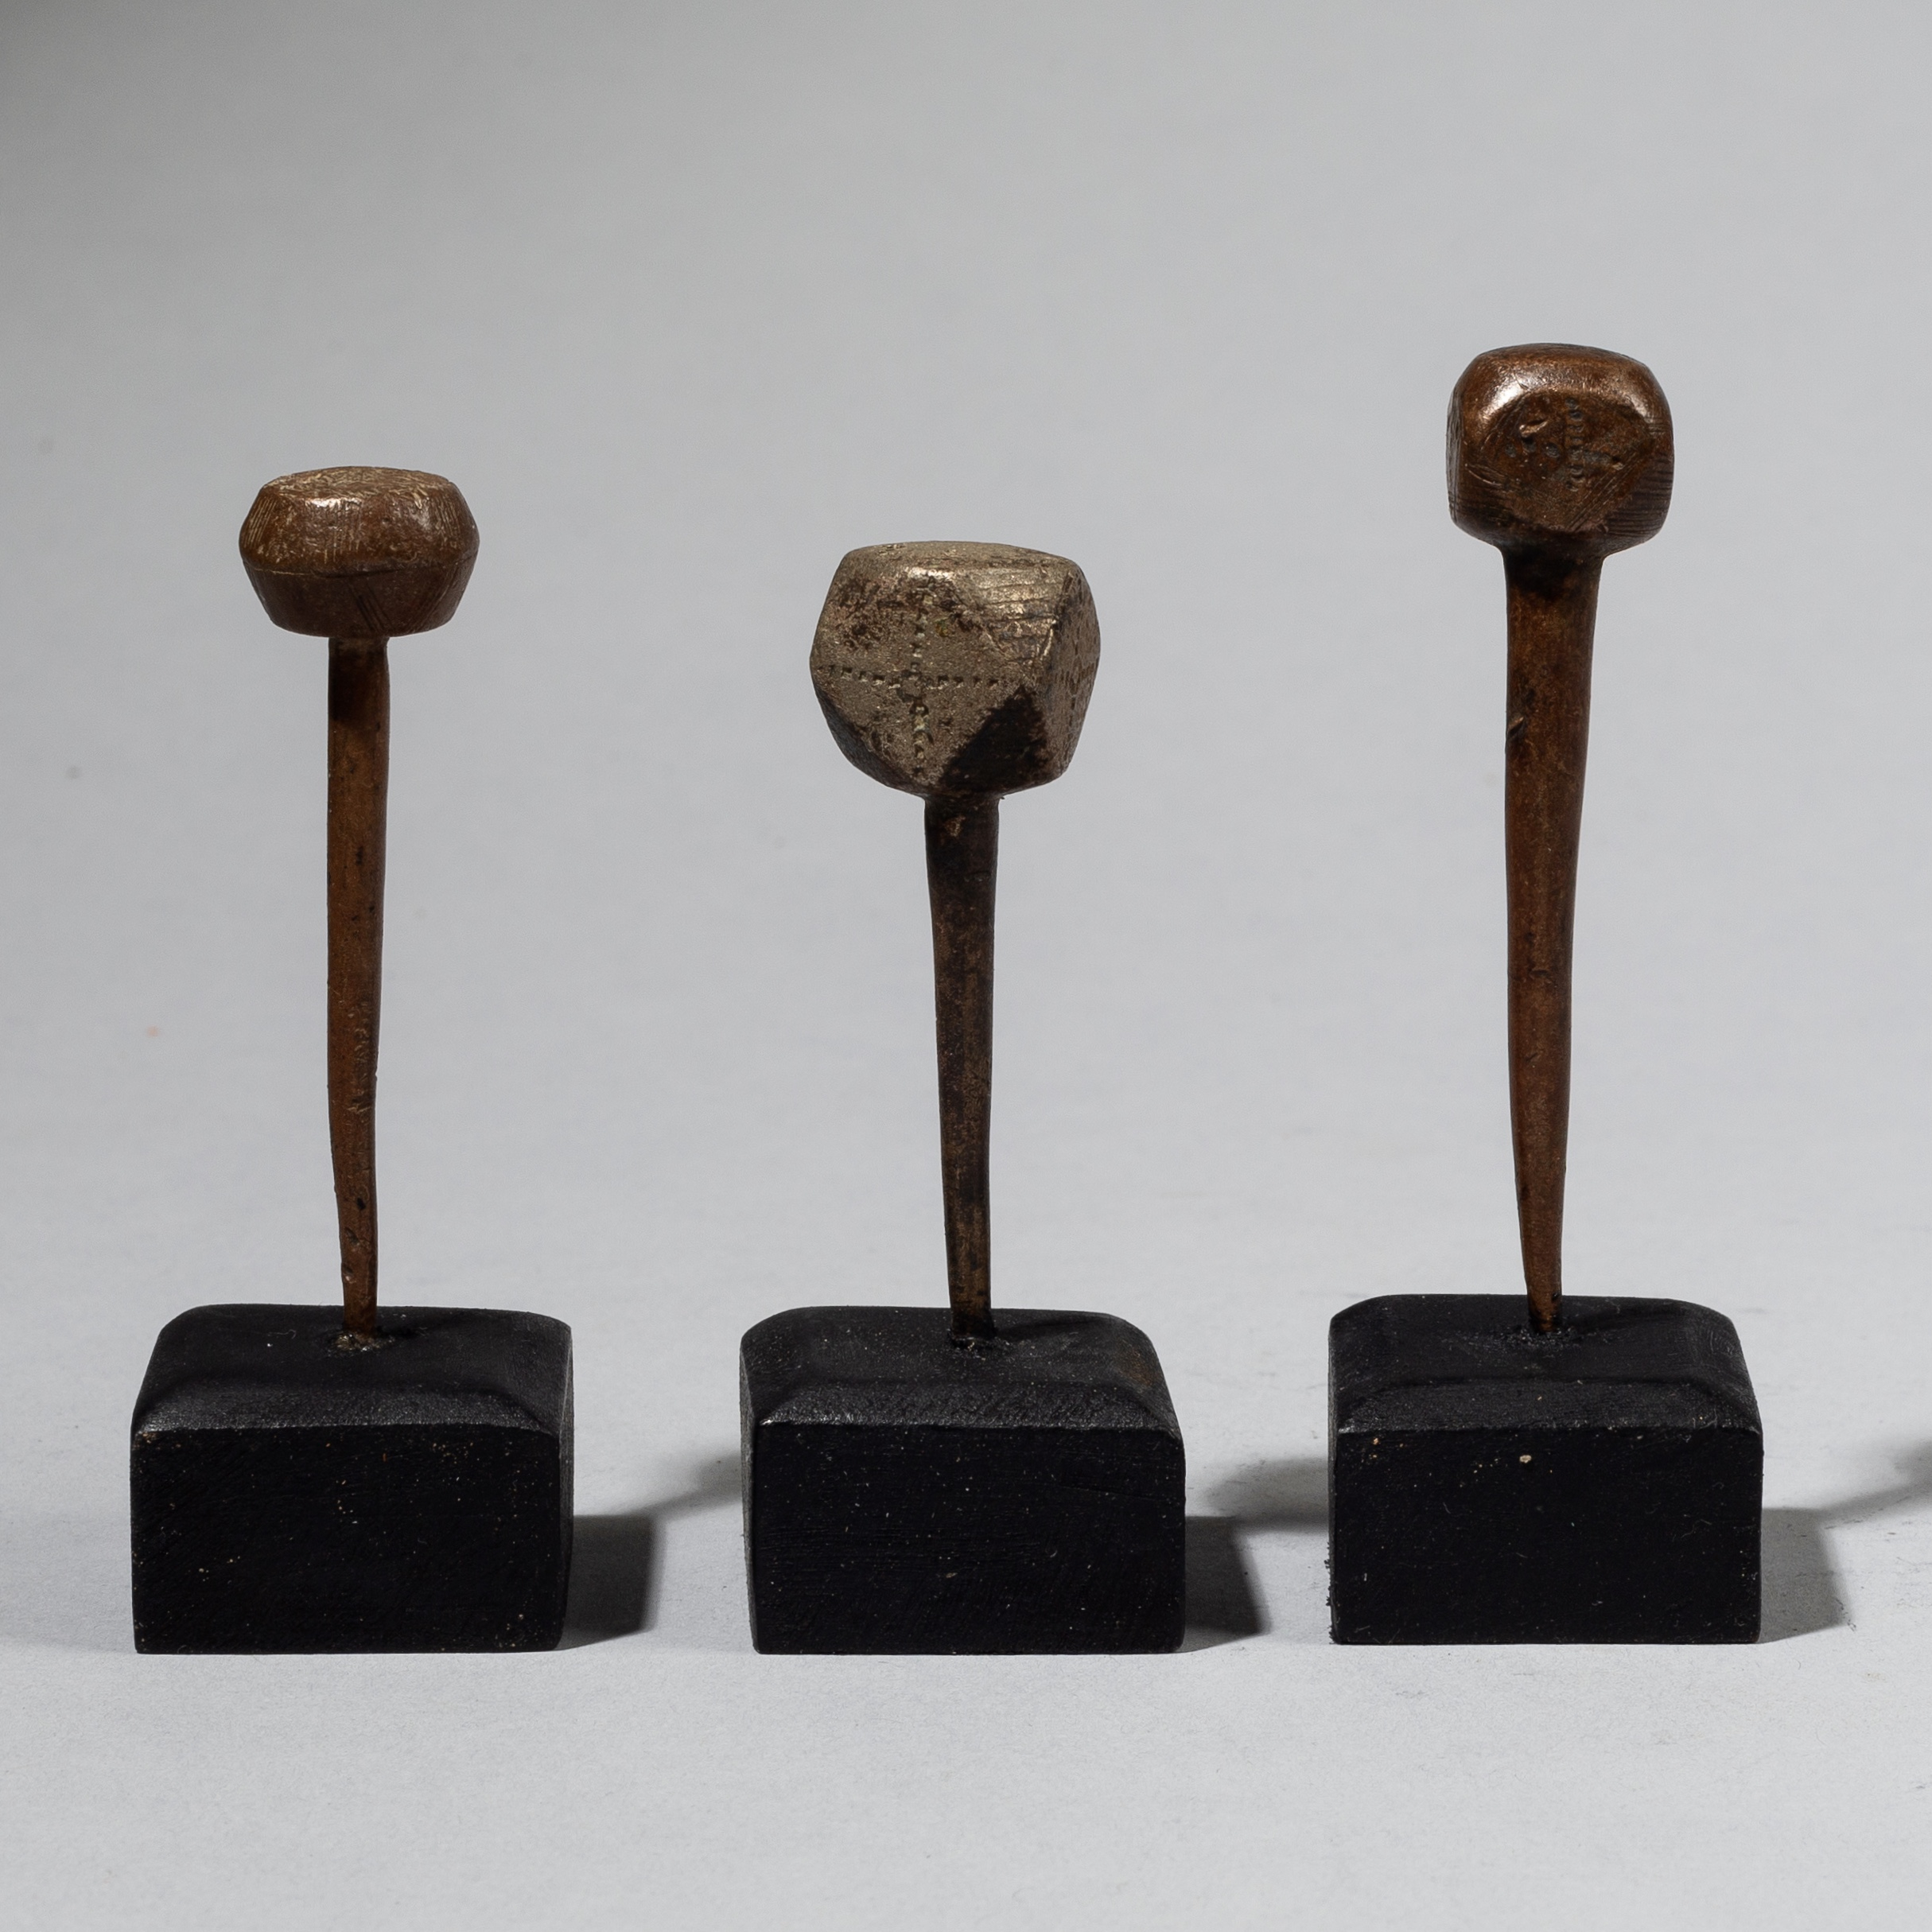 3 FULANI COPPER HAIR PINS FROM MALI W. AFRICA ( No 4438)